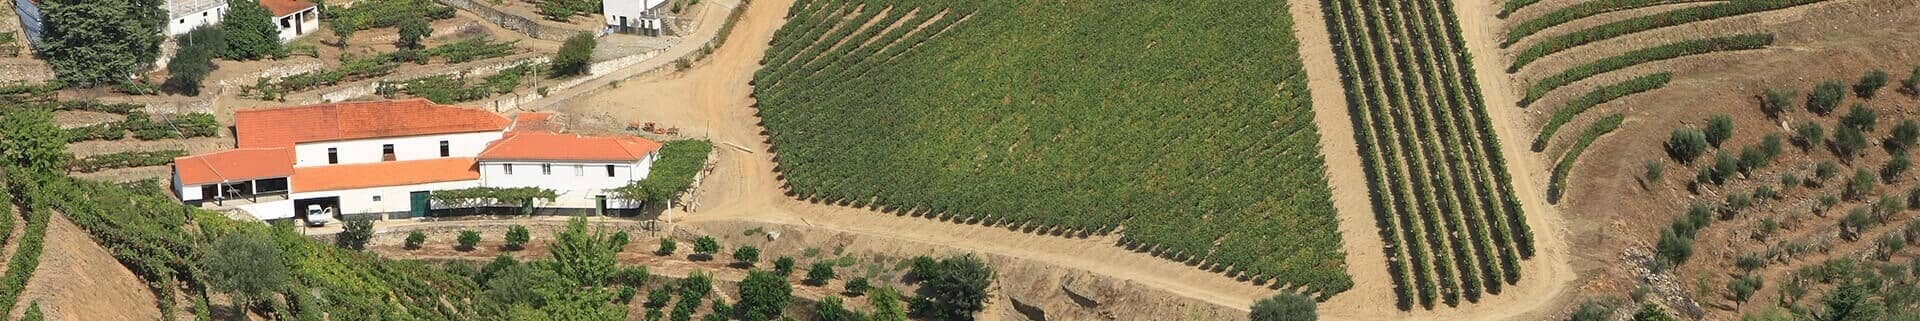 Ironically, the histories of many of the Pinhão Valley vineyards are not as well documented as those of the estates...